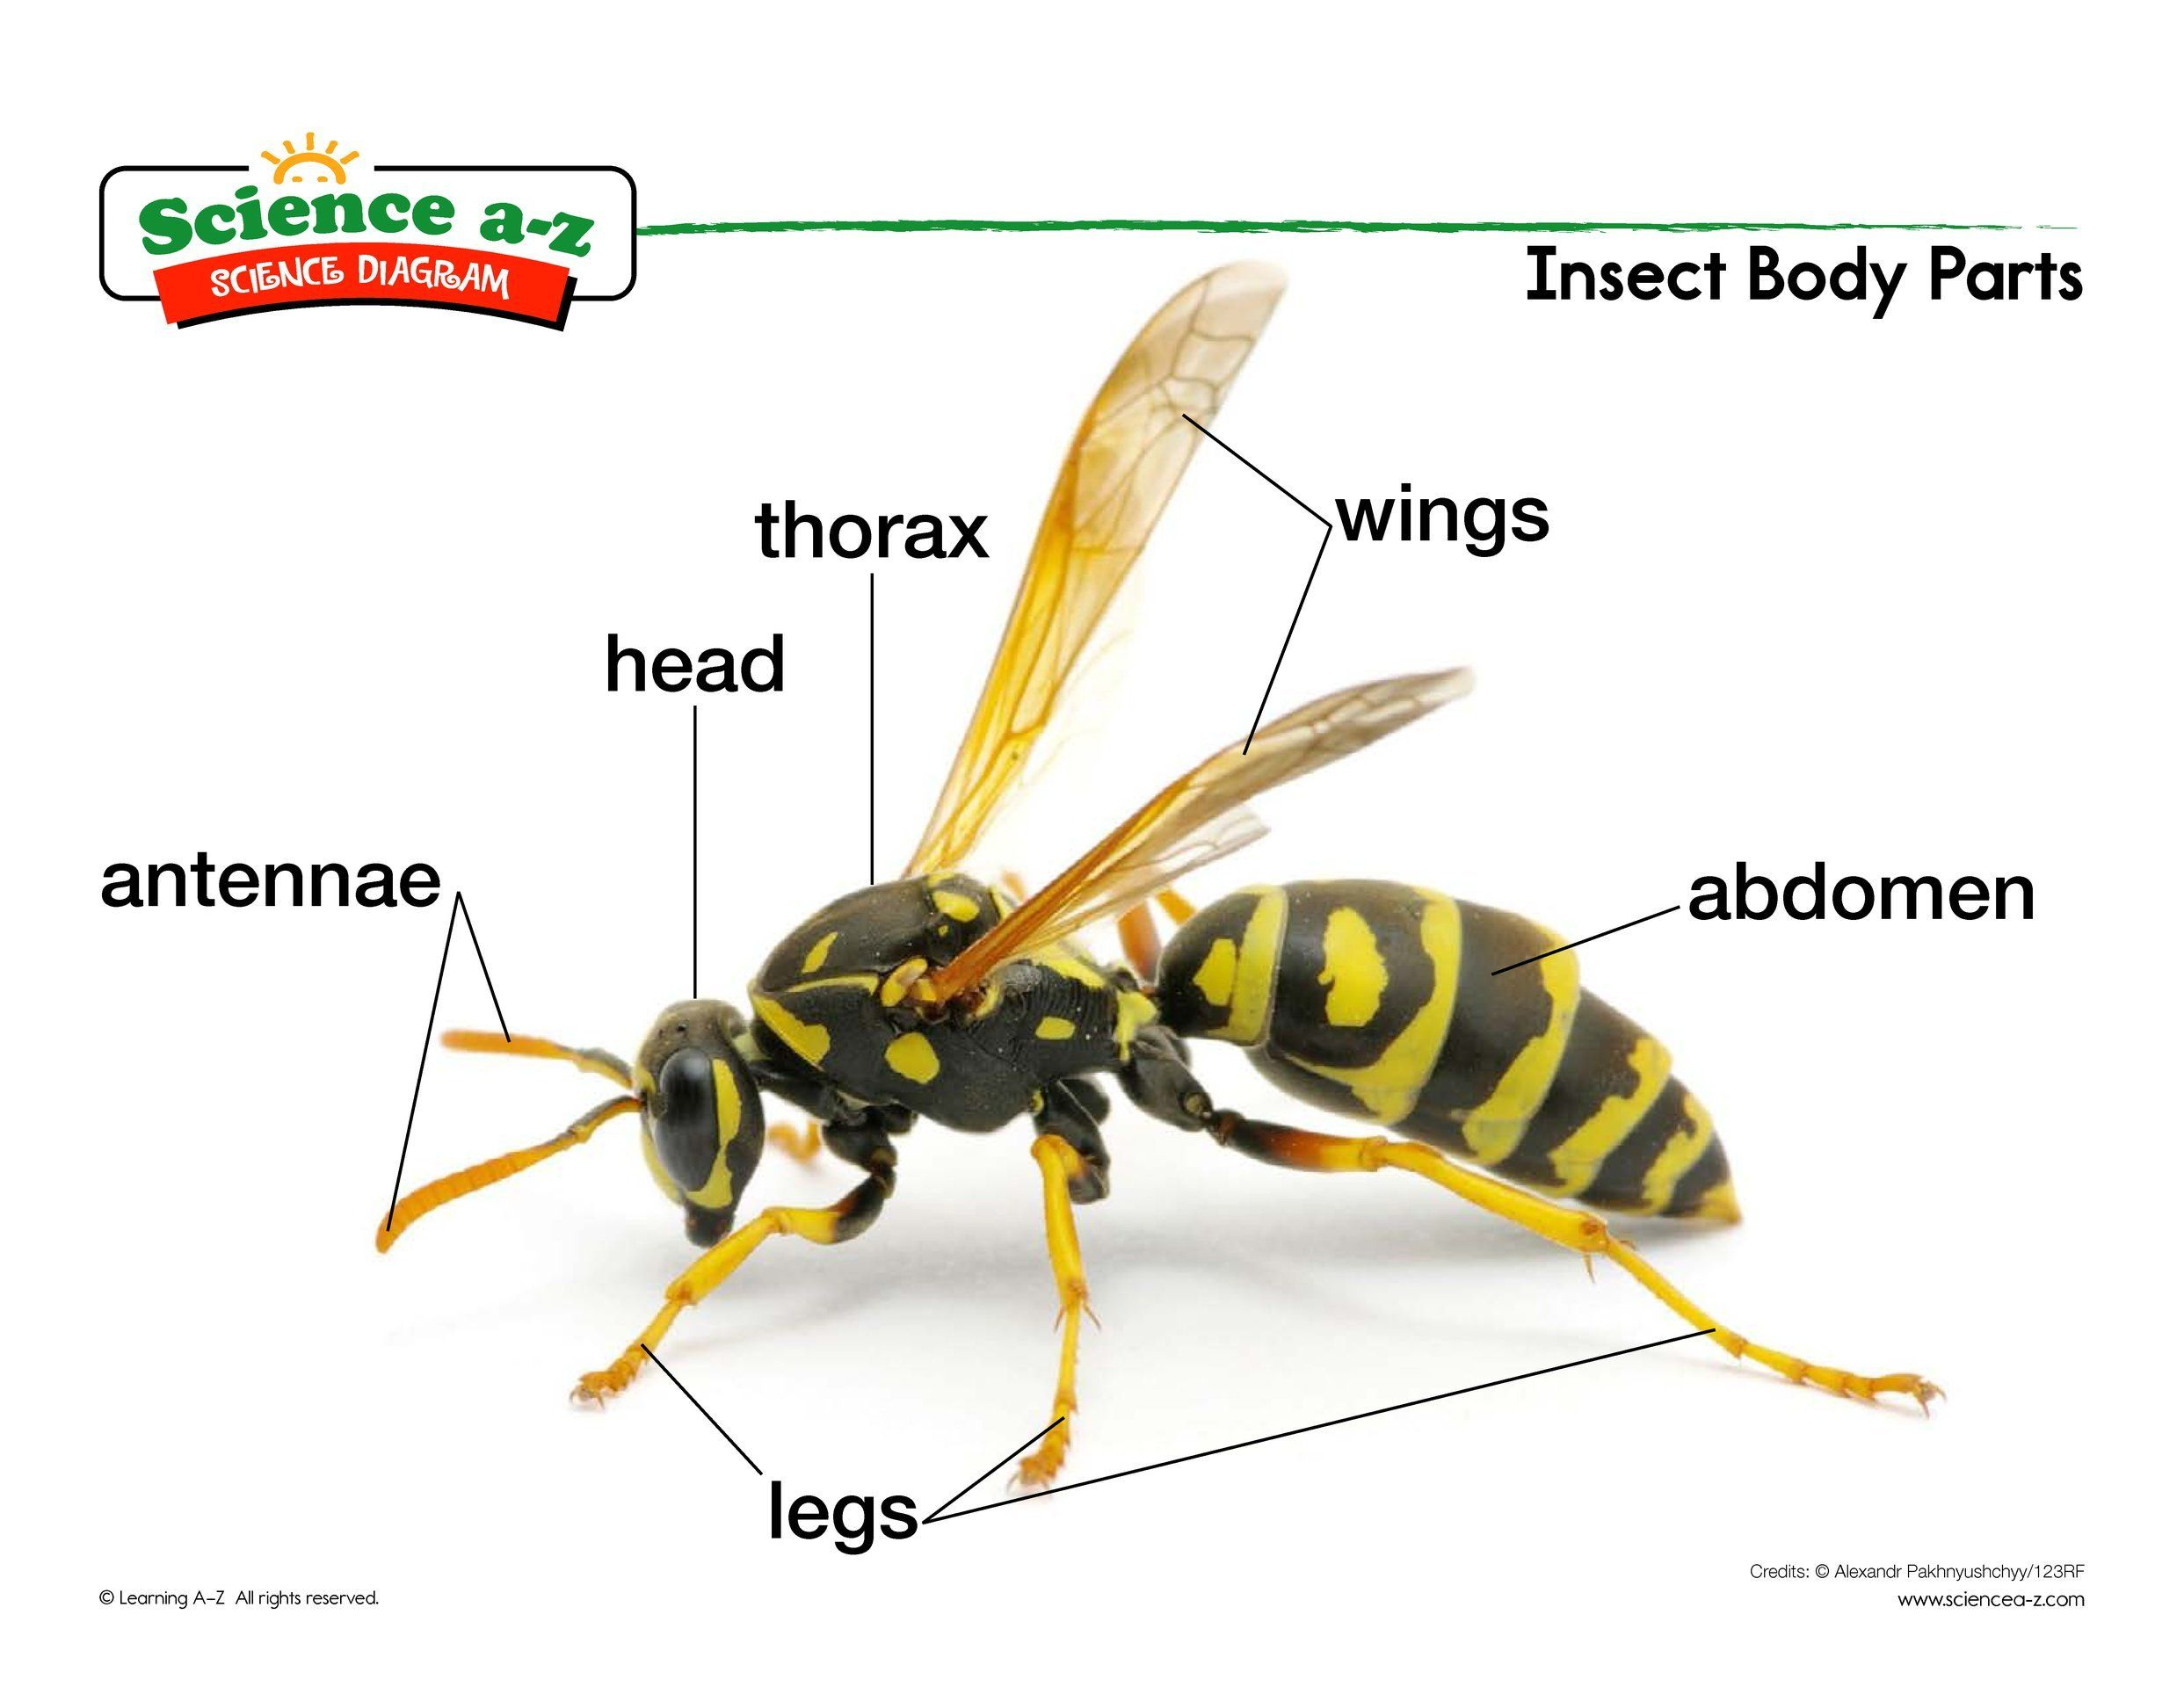 Insect Body Parts Science - Insects